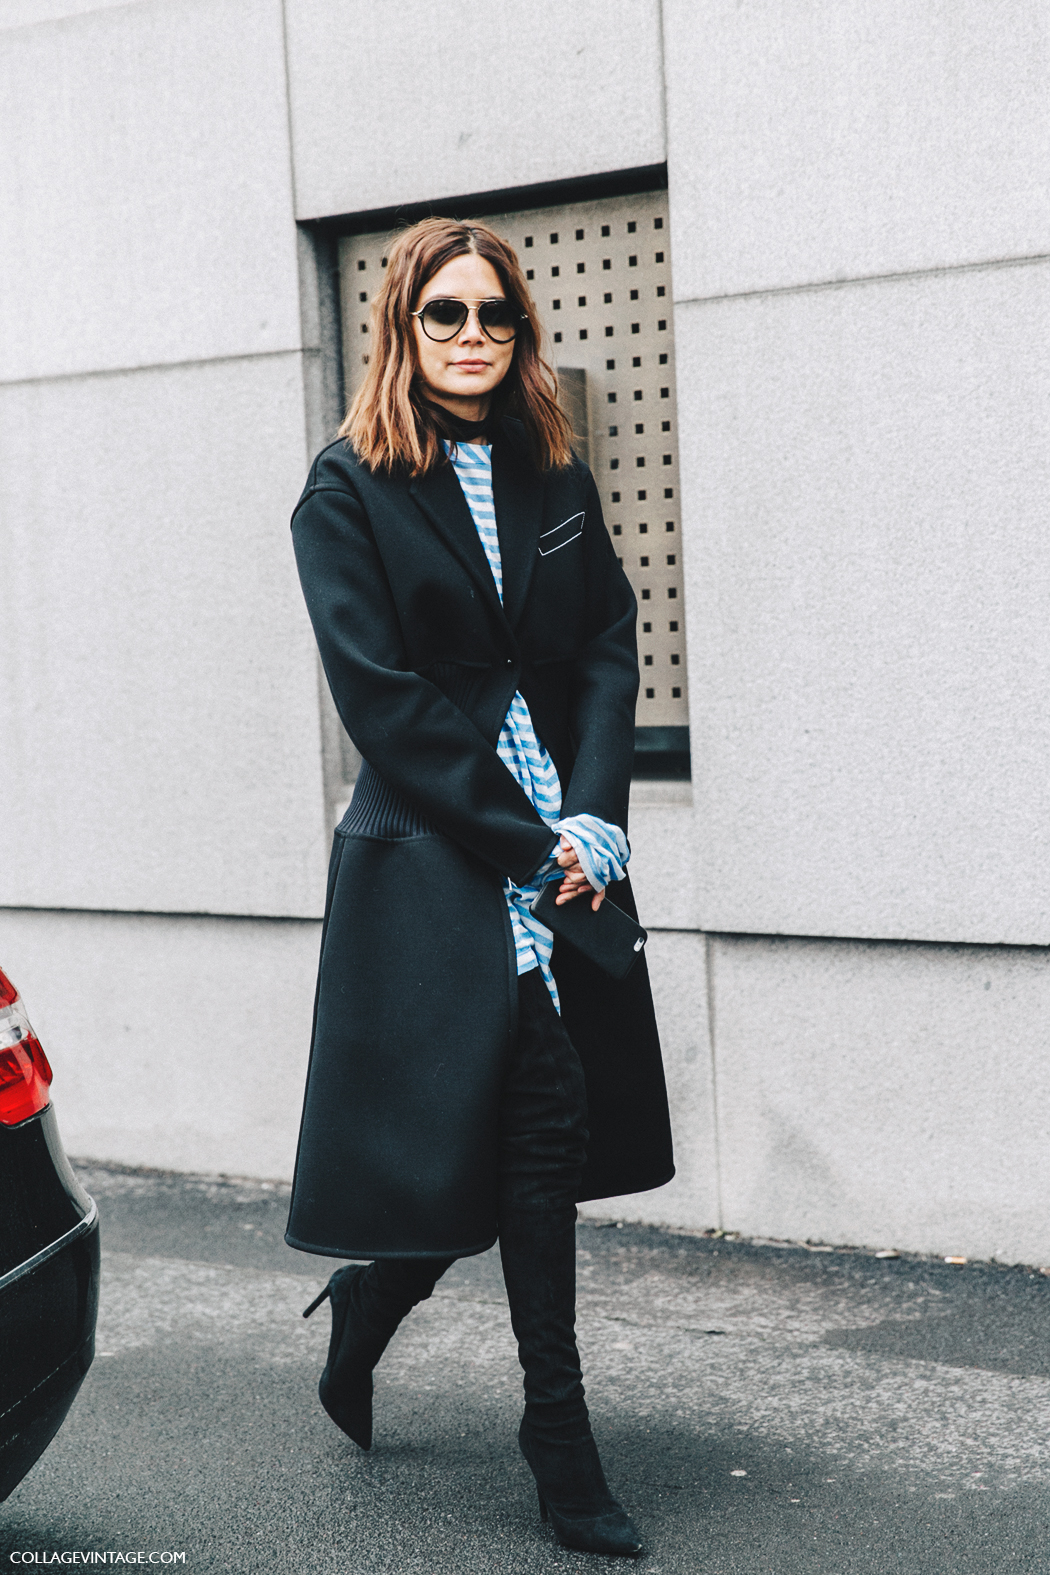 Milan_Fashion_Week_Fall_16-MFW-Street_Style-Collage_Vintage-Christine_Centenera-Celine_Outfit-Over_The_Knee_Boots-2